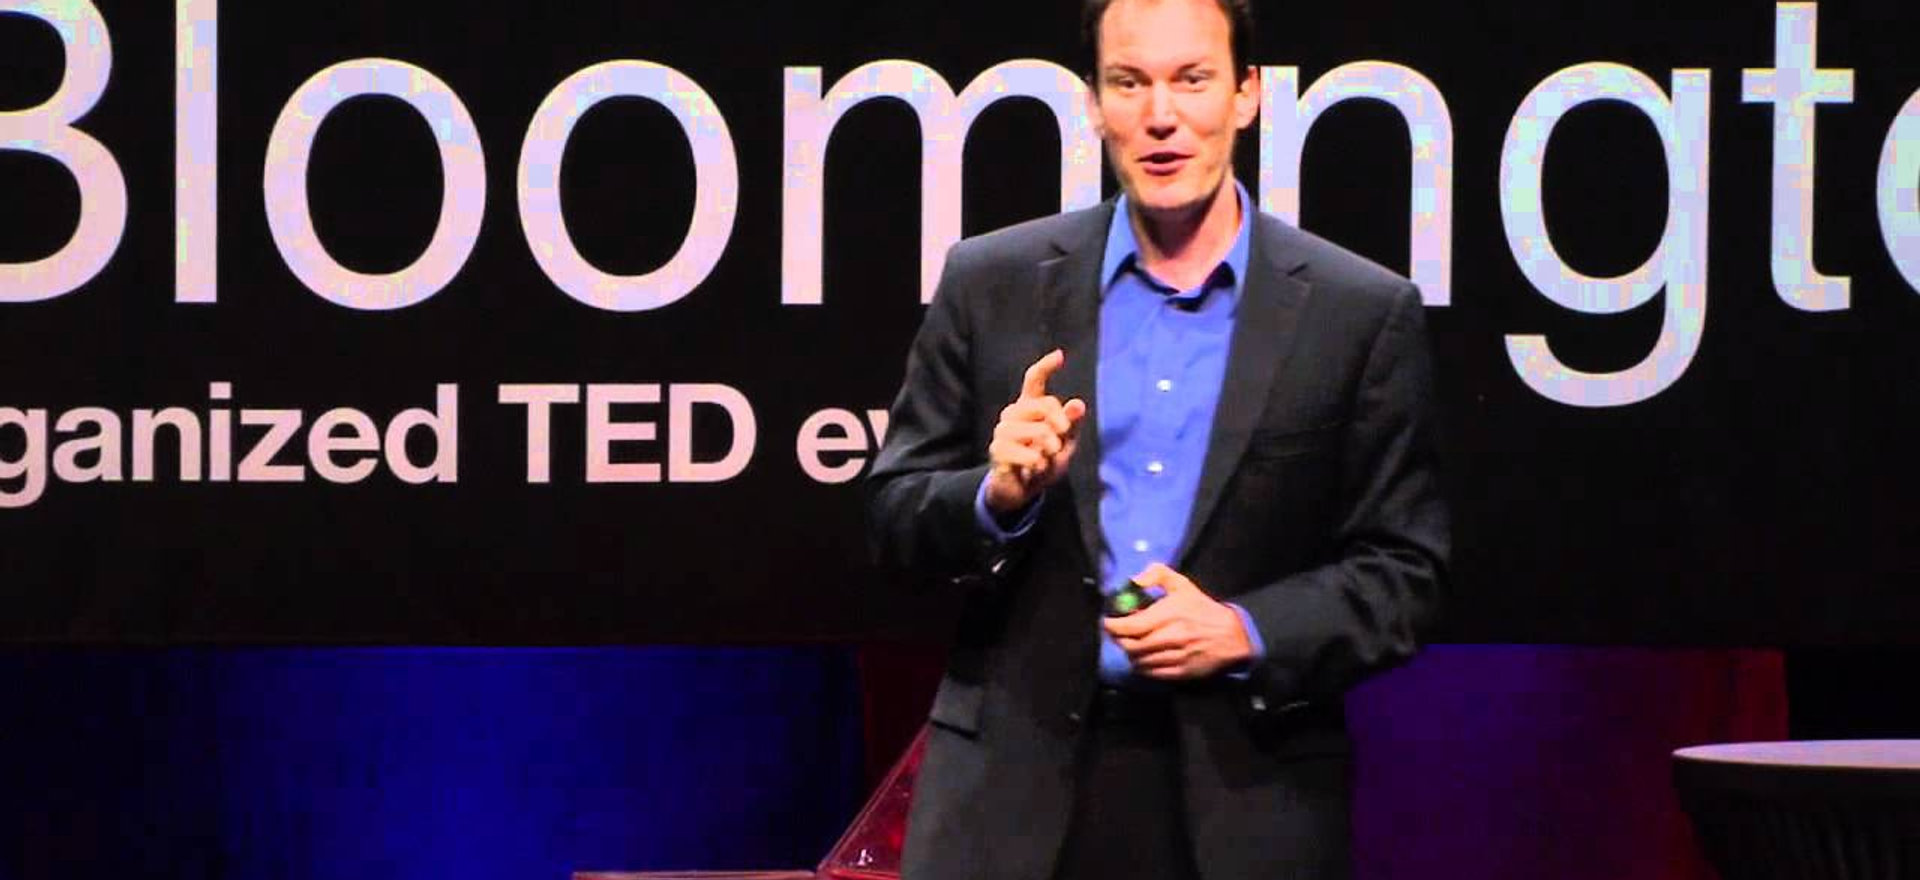 Shawn Achor - TED Talk